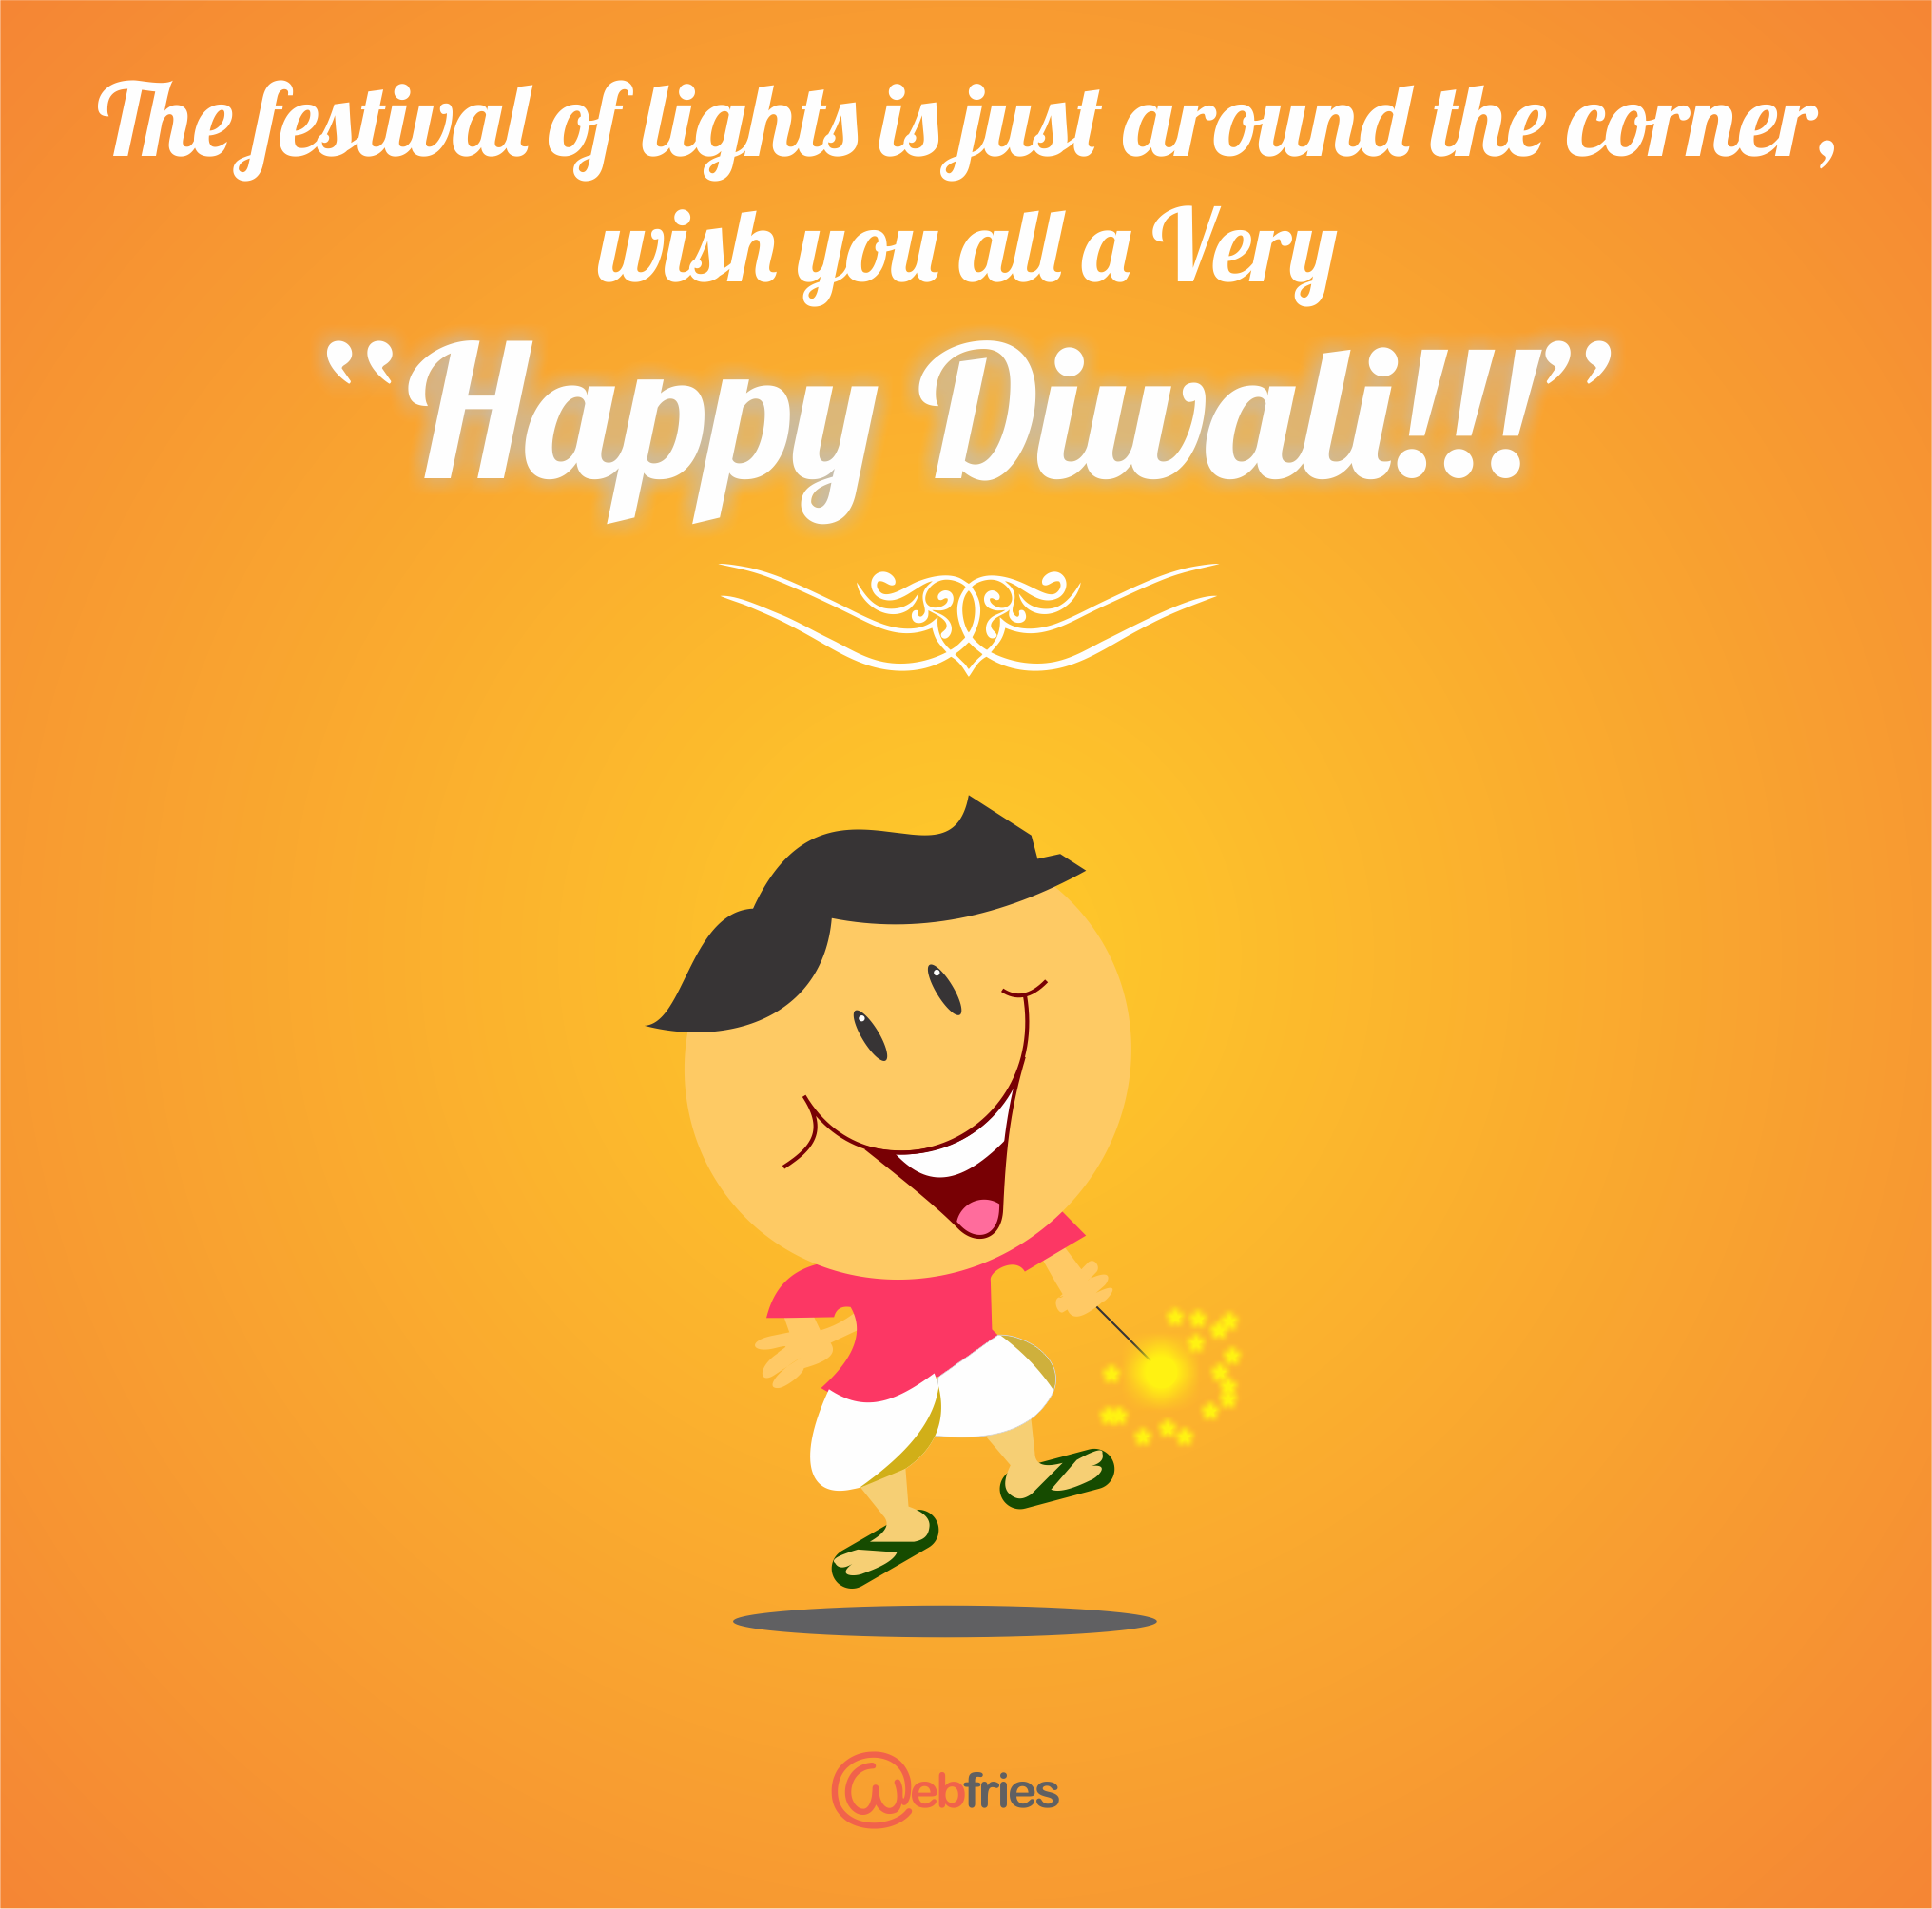 Diwali Is A Synonym For Happiness Prosperity New Beginnings Webfries Wishes All A Very Happy And Joy Website Design Web Development Company Festival Lights